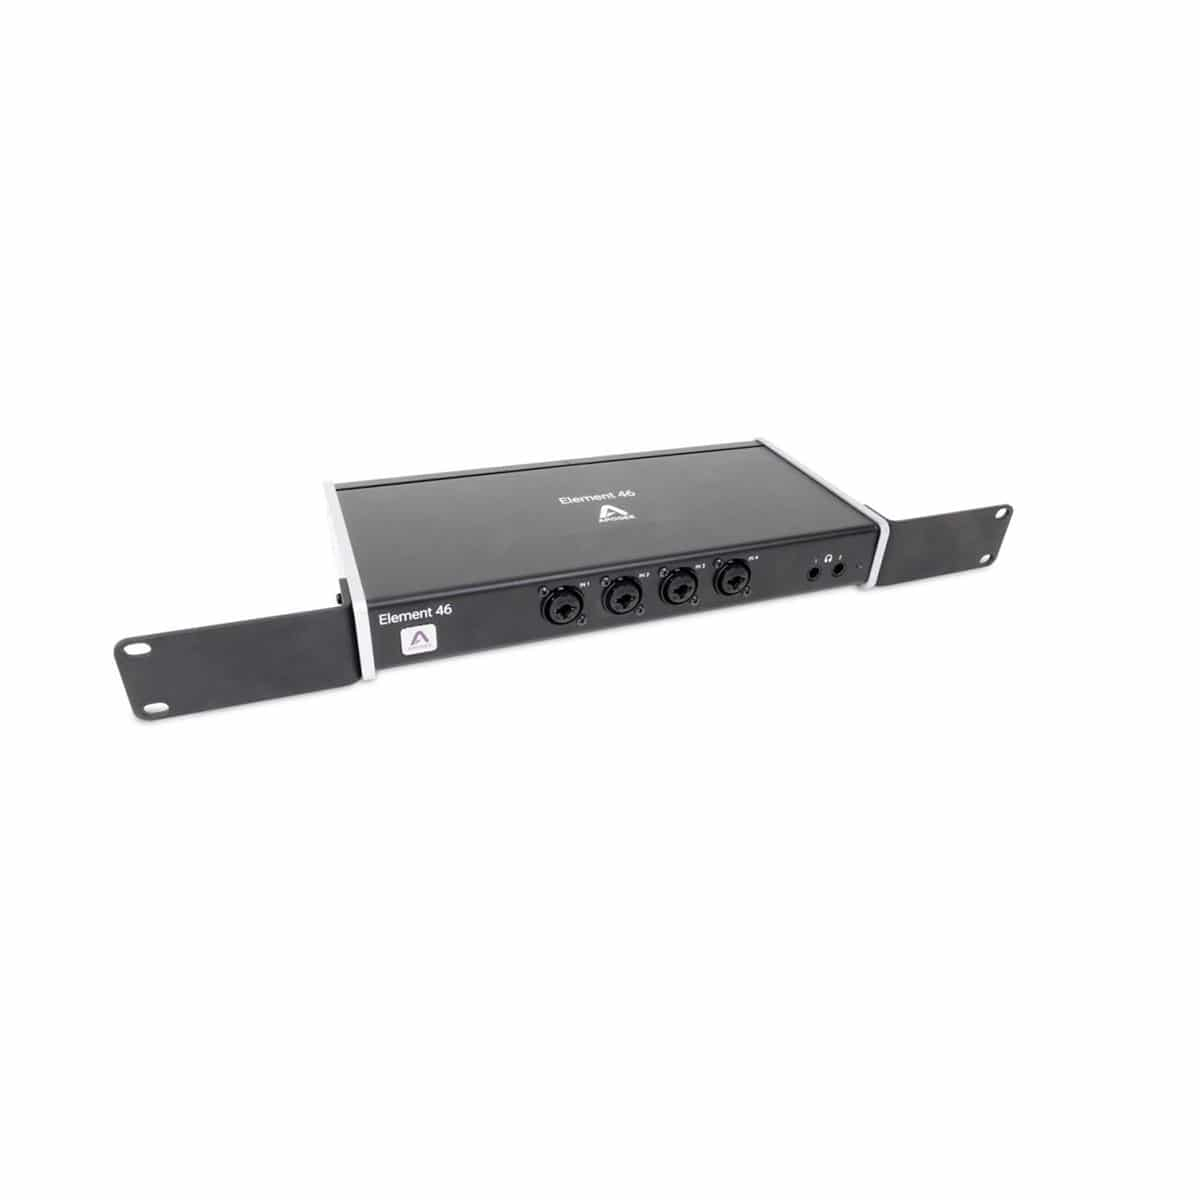 Apogee Rack Ears Element 46 01 Pro Audio, Accessori